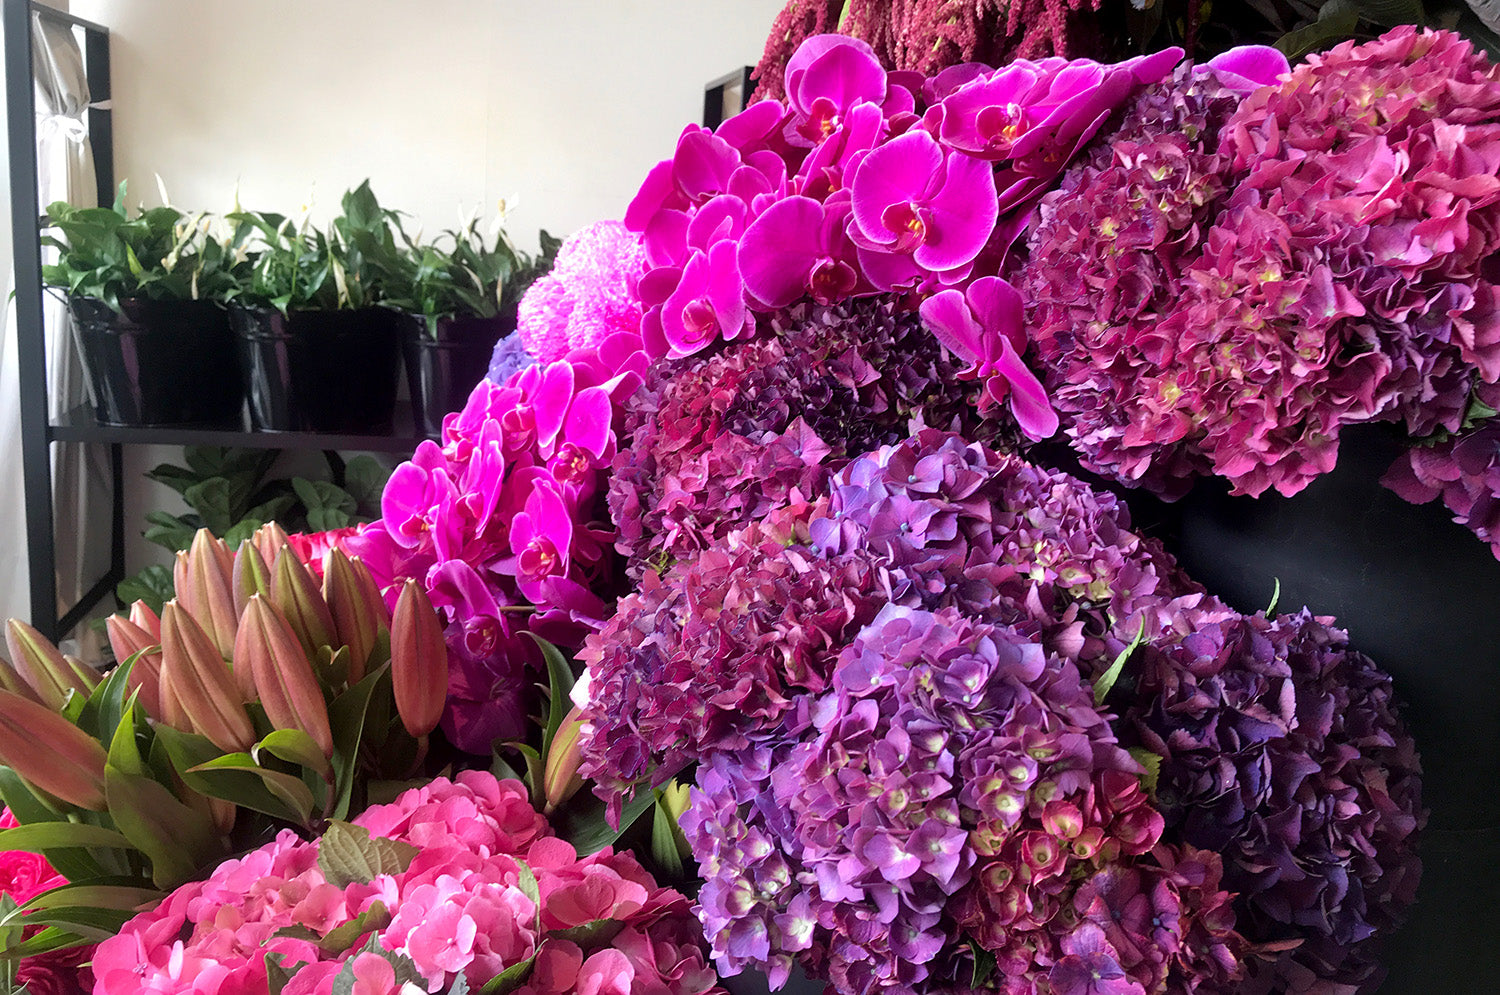 Melbourne florist with hydrangea being displayed on shop stands